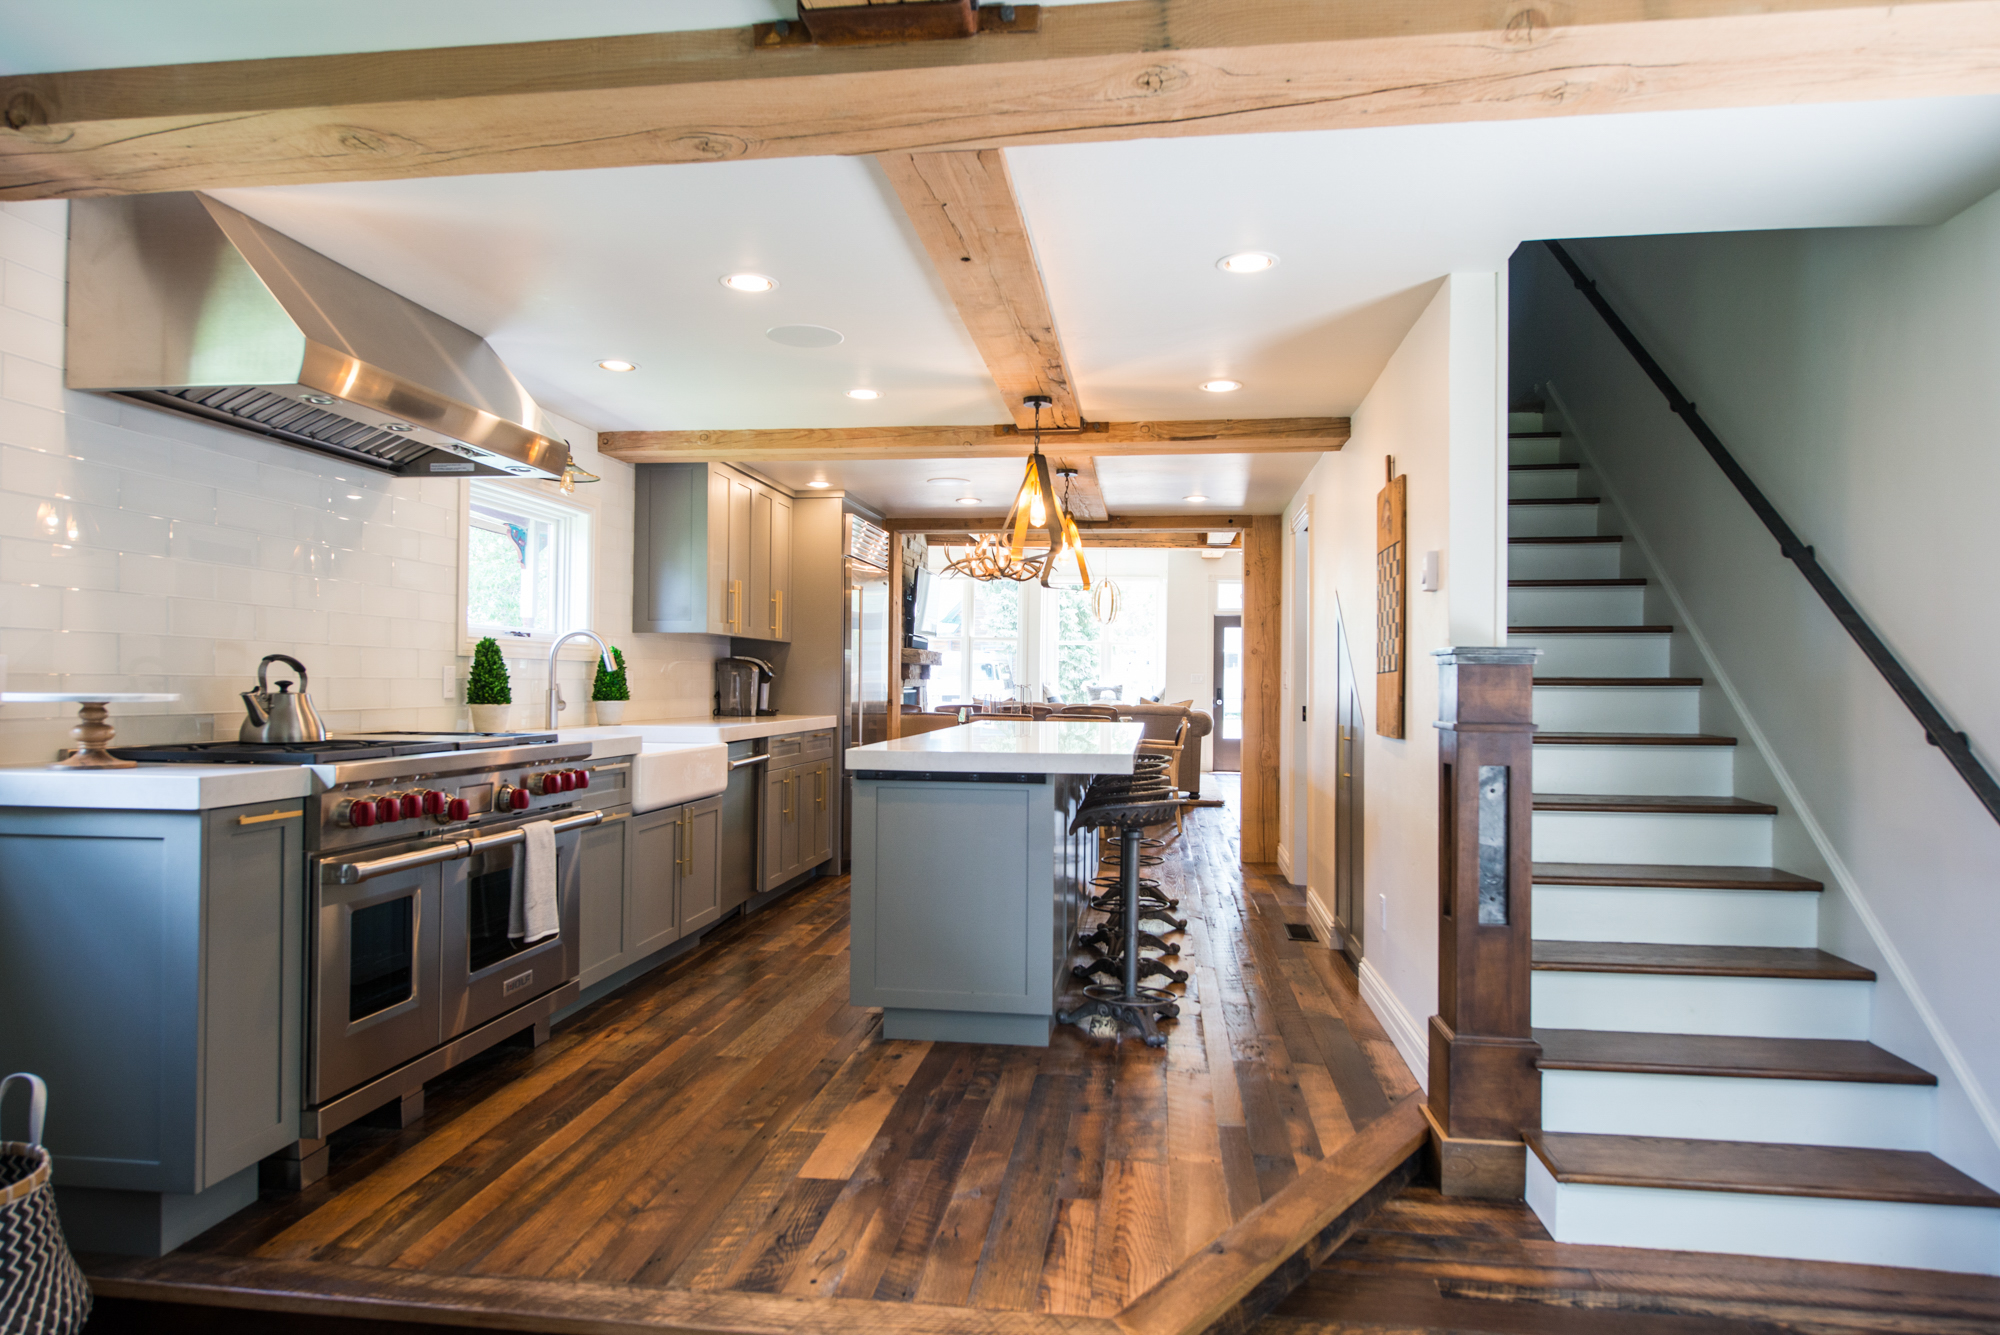 Somrak Concept and Design - Crested Butte Historic Remodel on Sopris